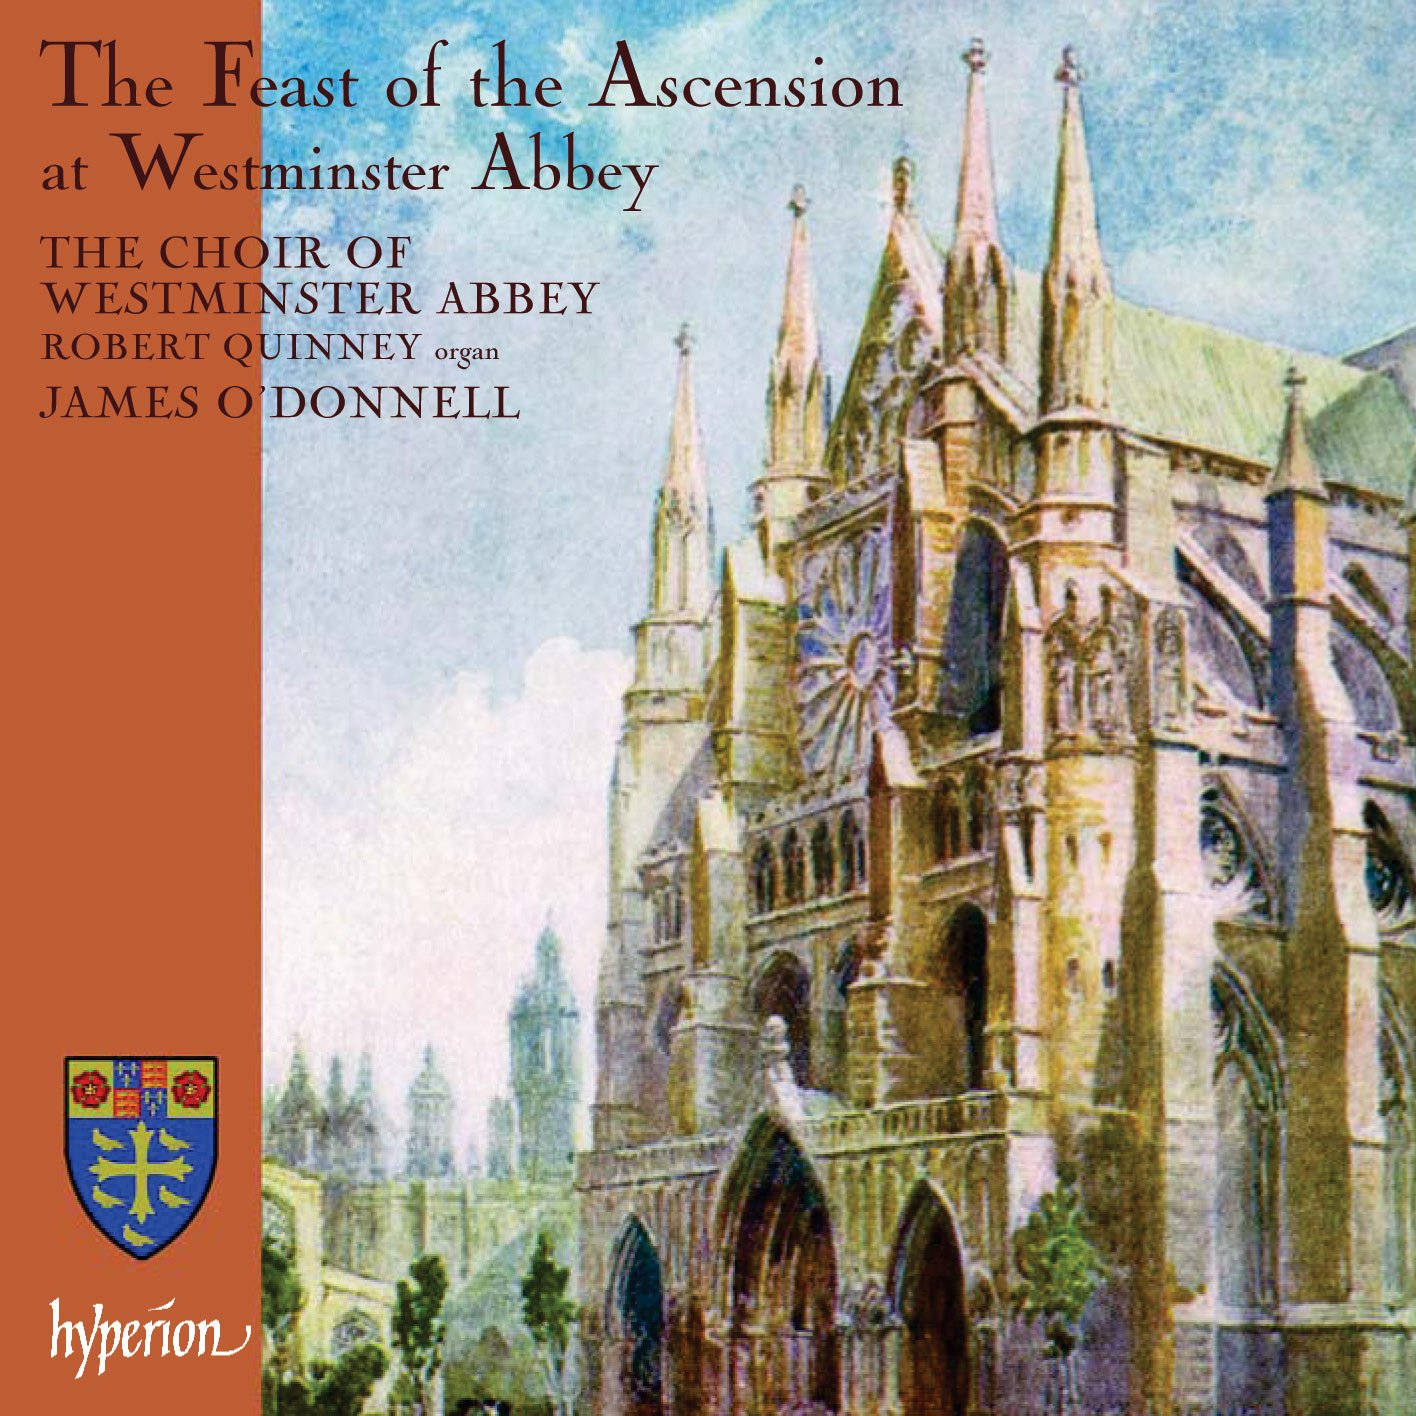 Feast of All stores are sold 2021 the Ascension at Westminster Abbey